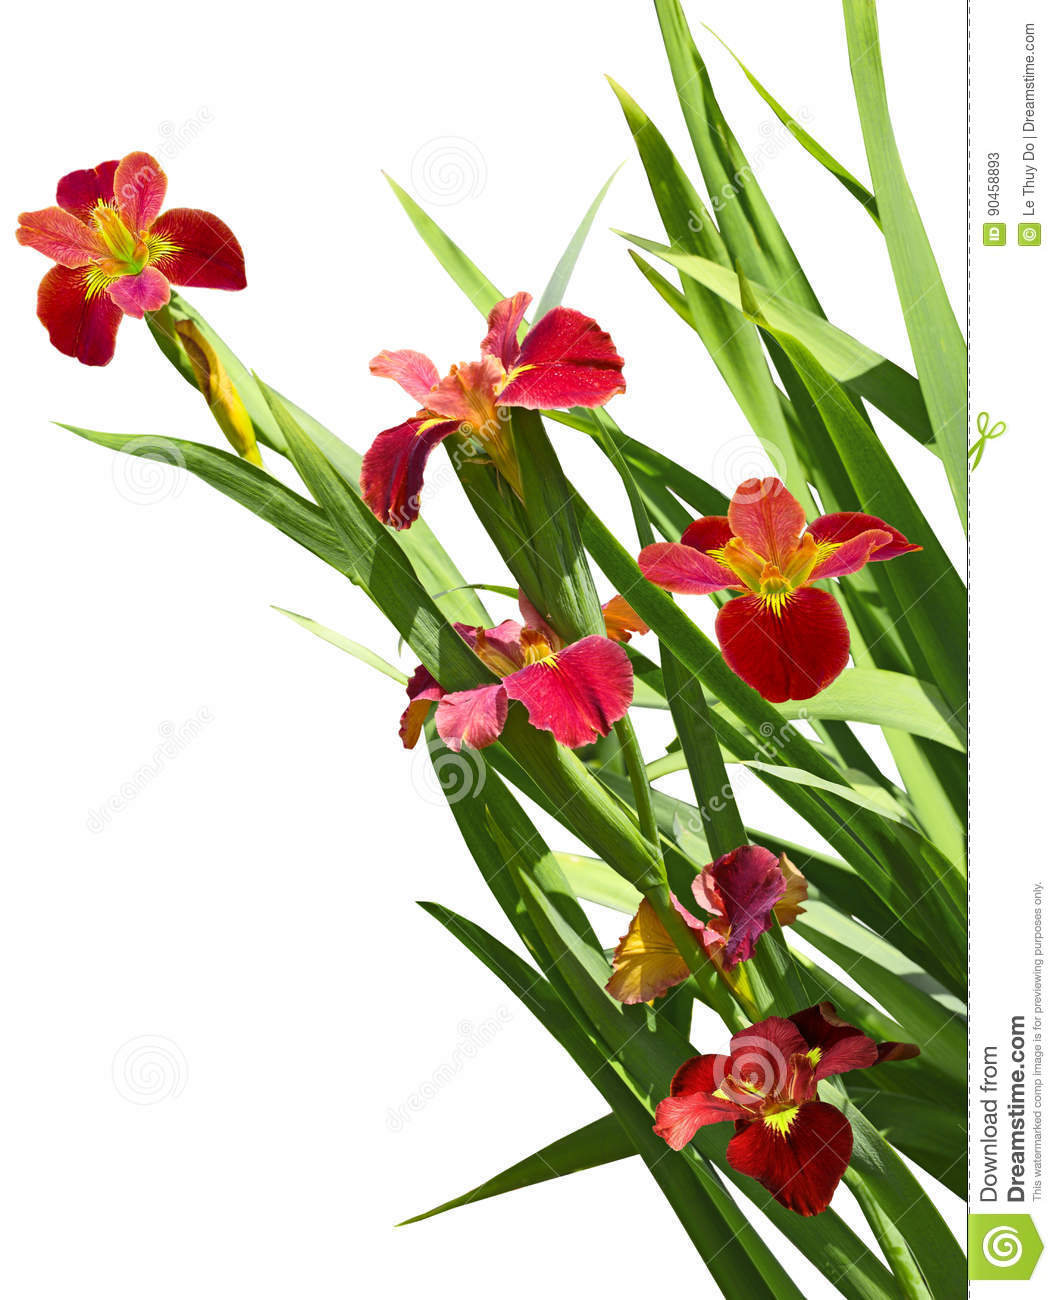 Red iris flower stock image image of bright spring 90458893 red iris flower izmirmasajfo Images